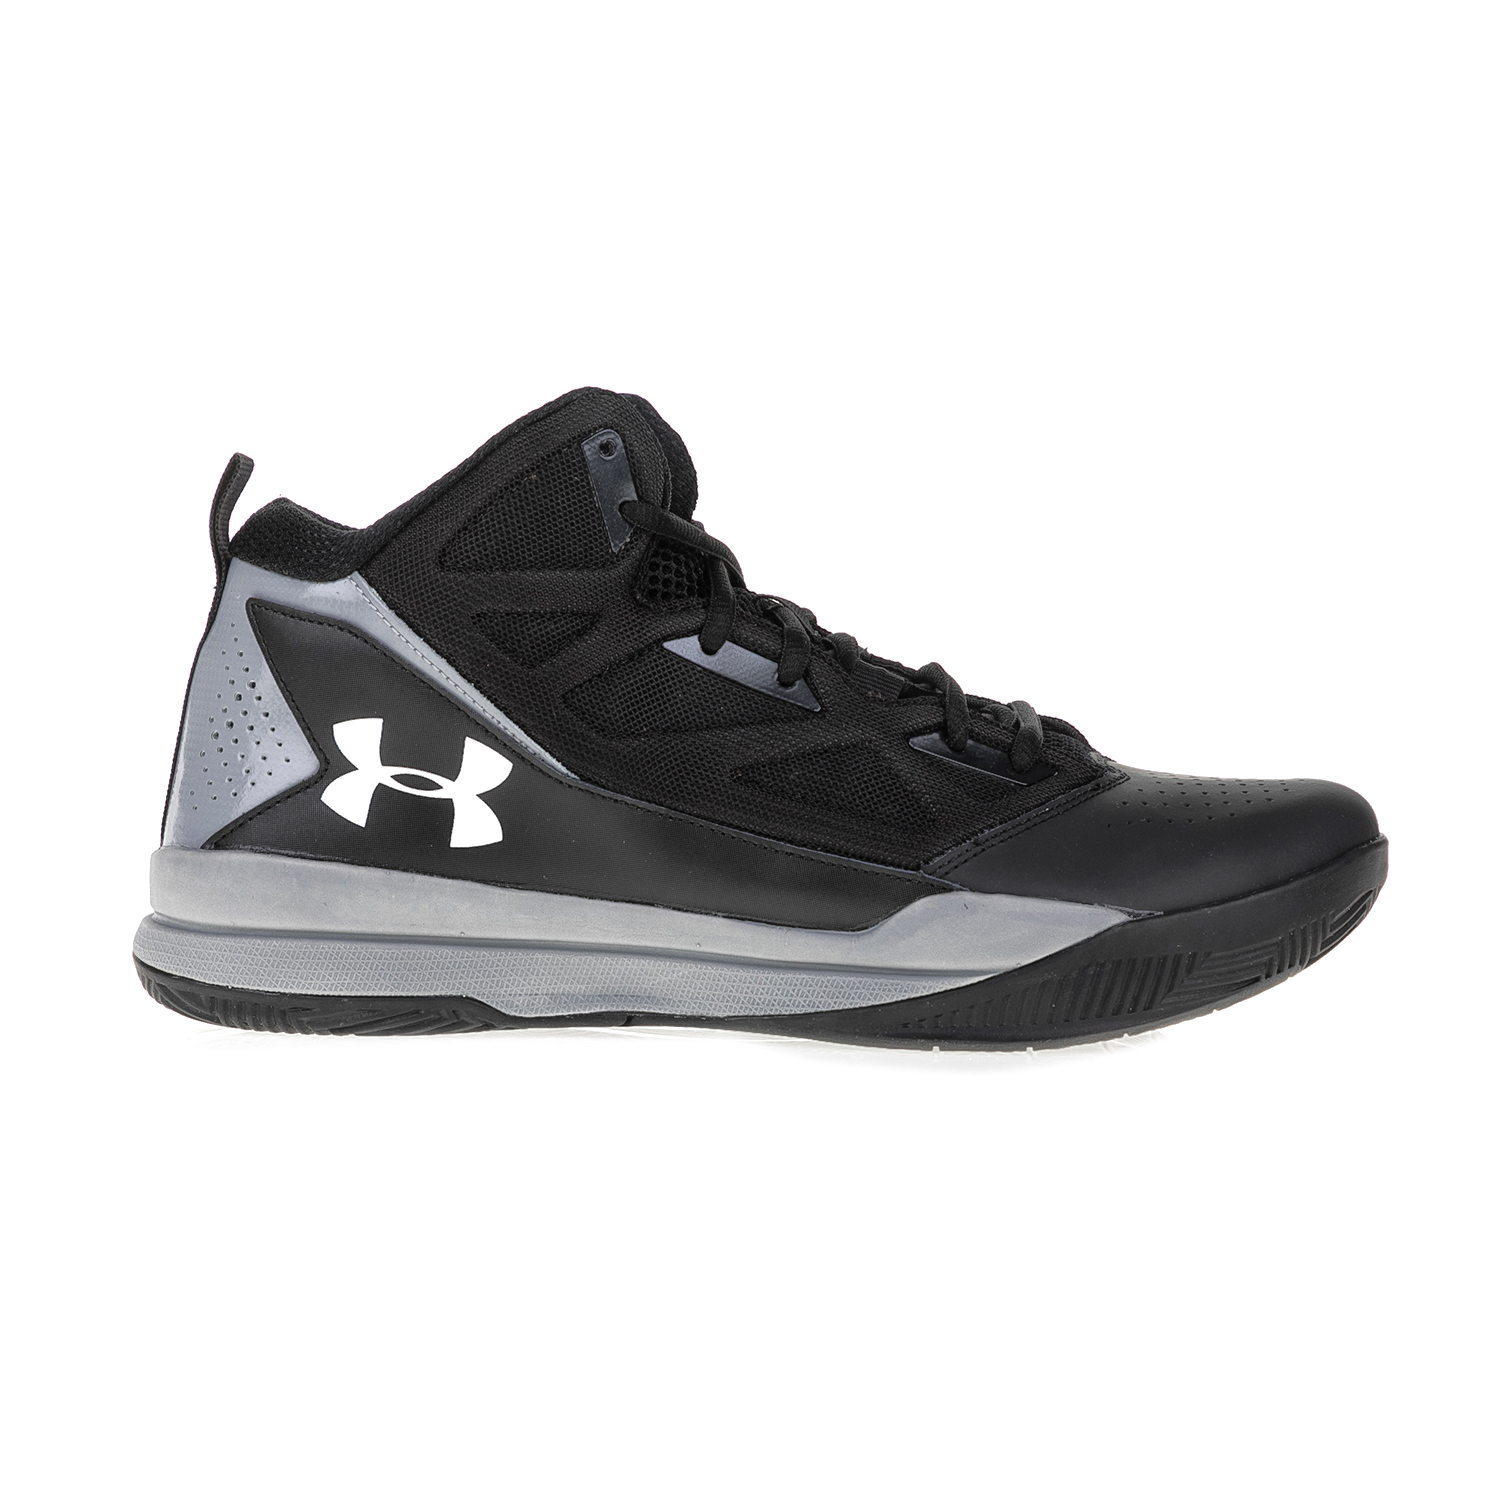 UNDER ARMOUR – Ανδρικά παπούτσια μπάσκετ UNDER ARMOUR Jet Mid ΥΠΟΔΗΜΑ μαύρα-γκρι